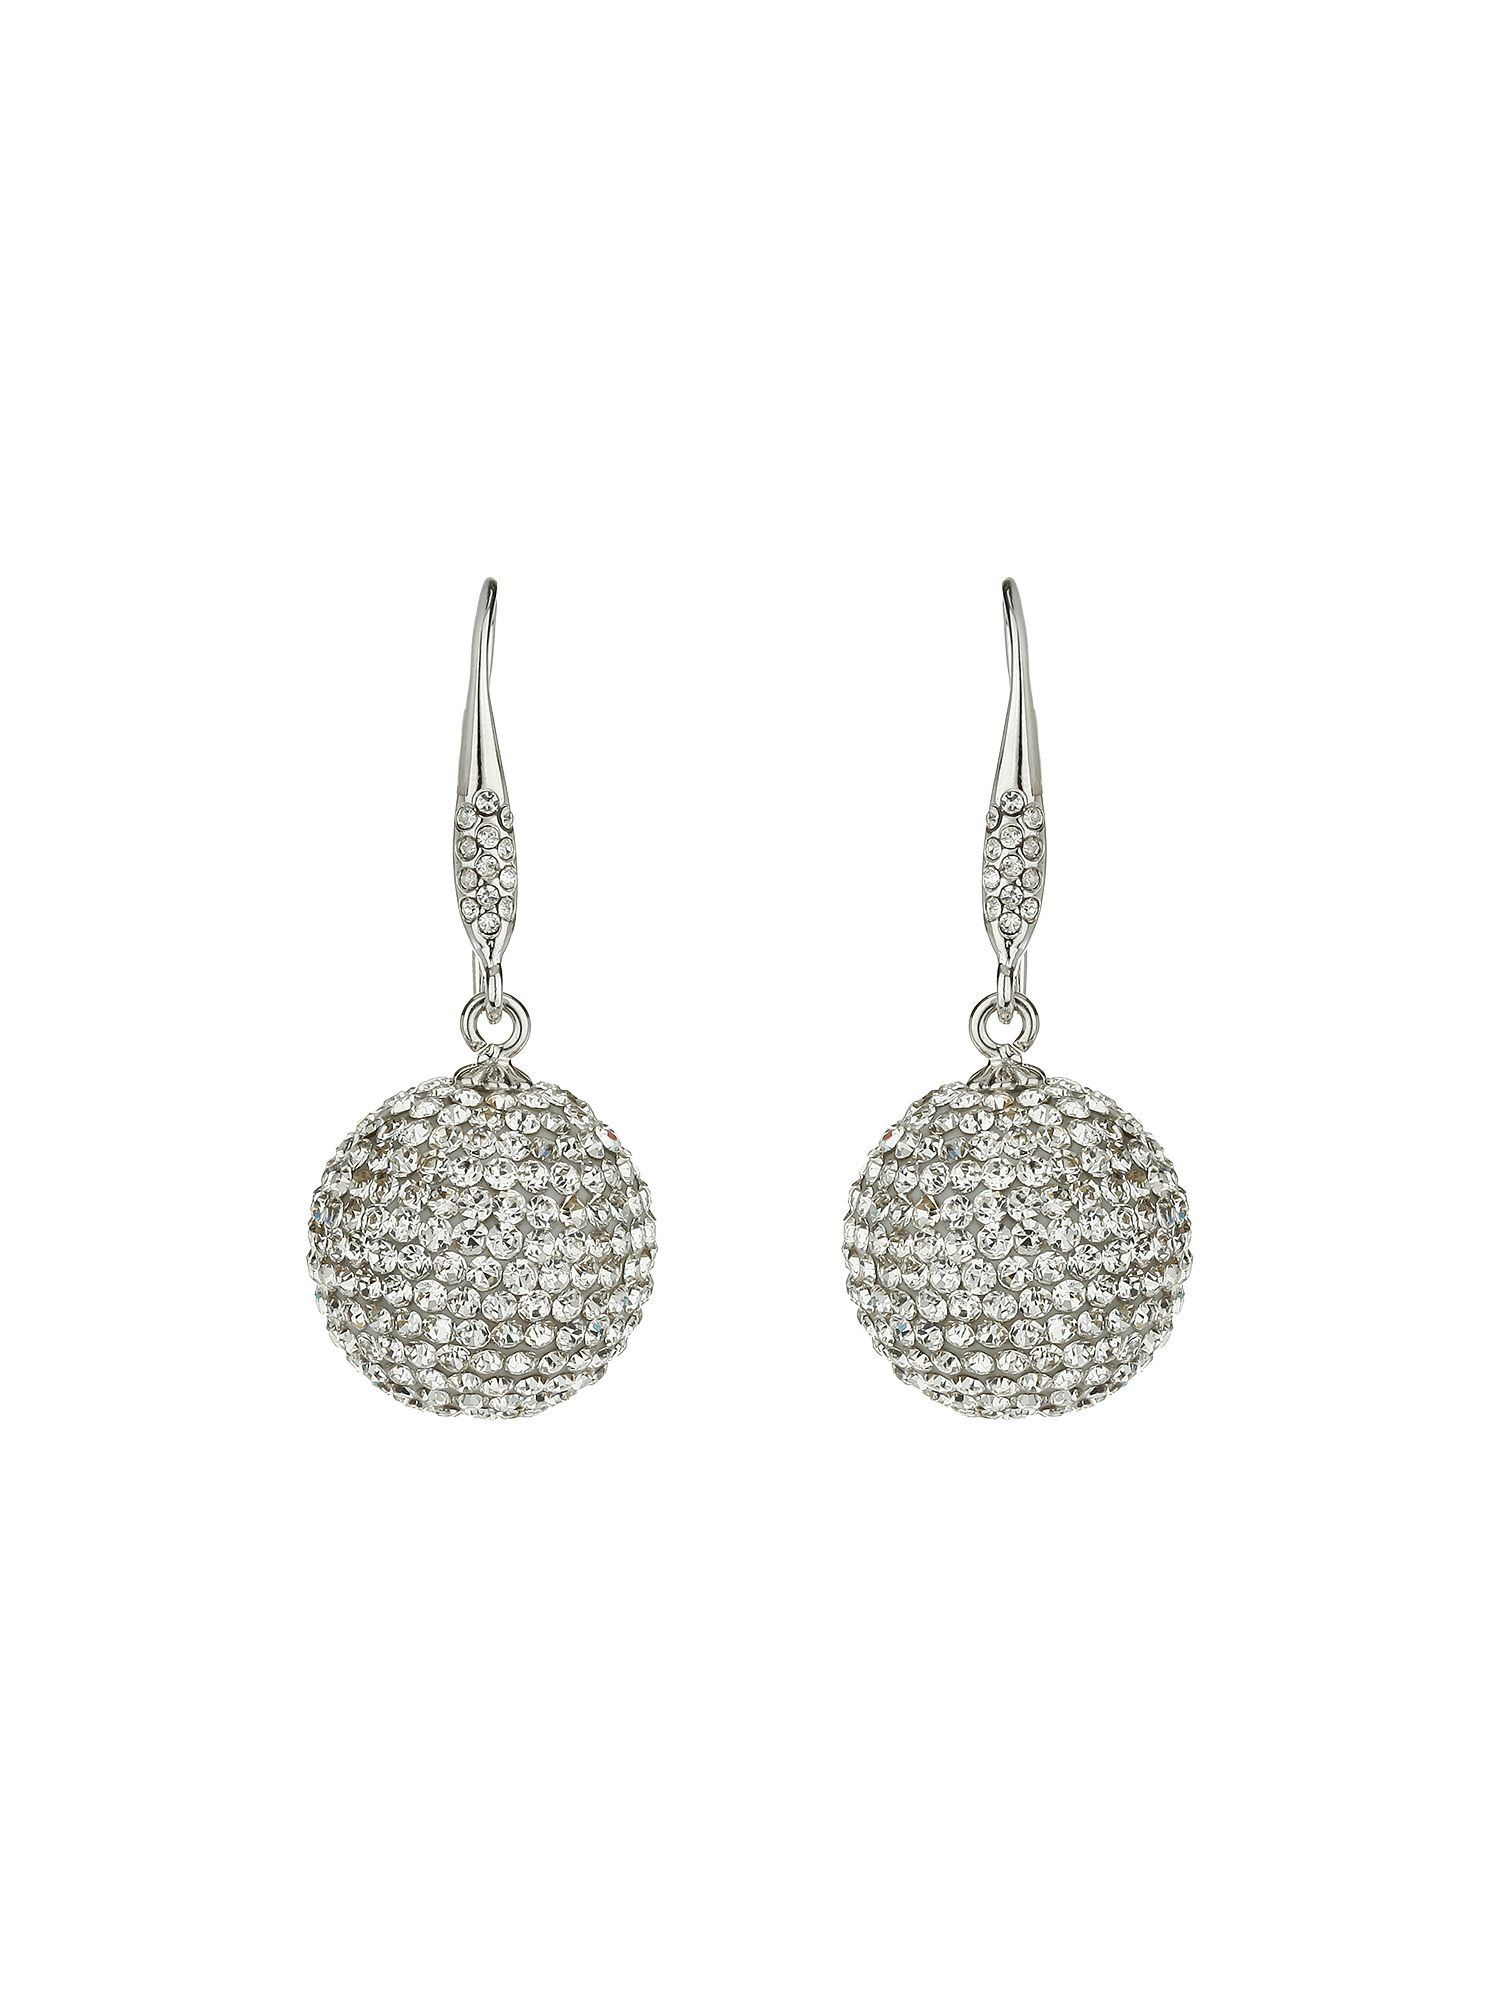 20MM BALL EARRING